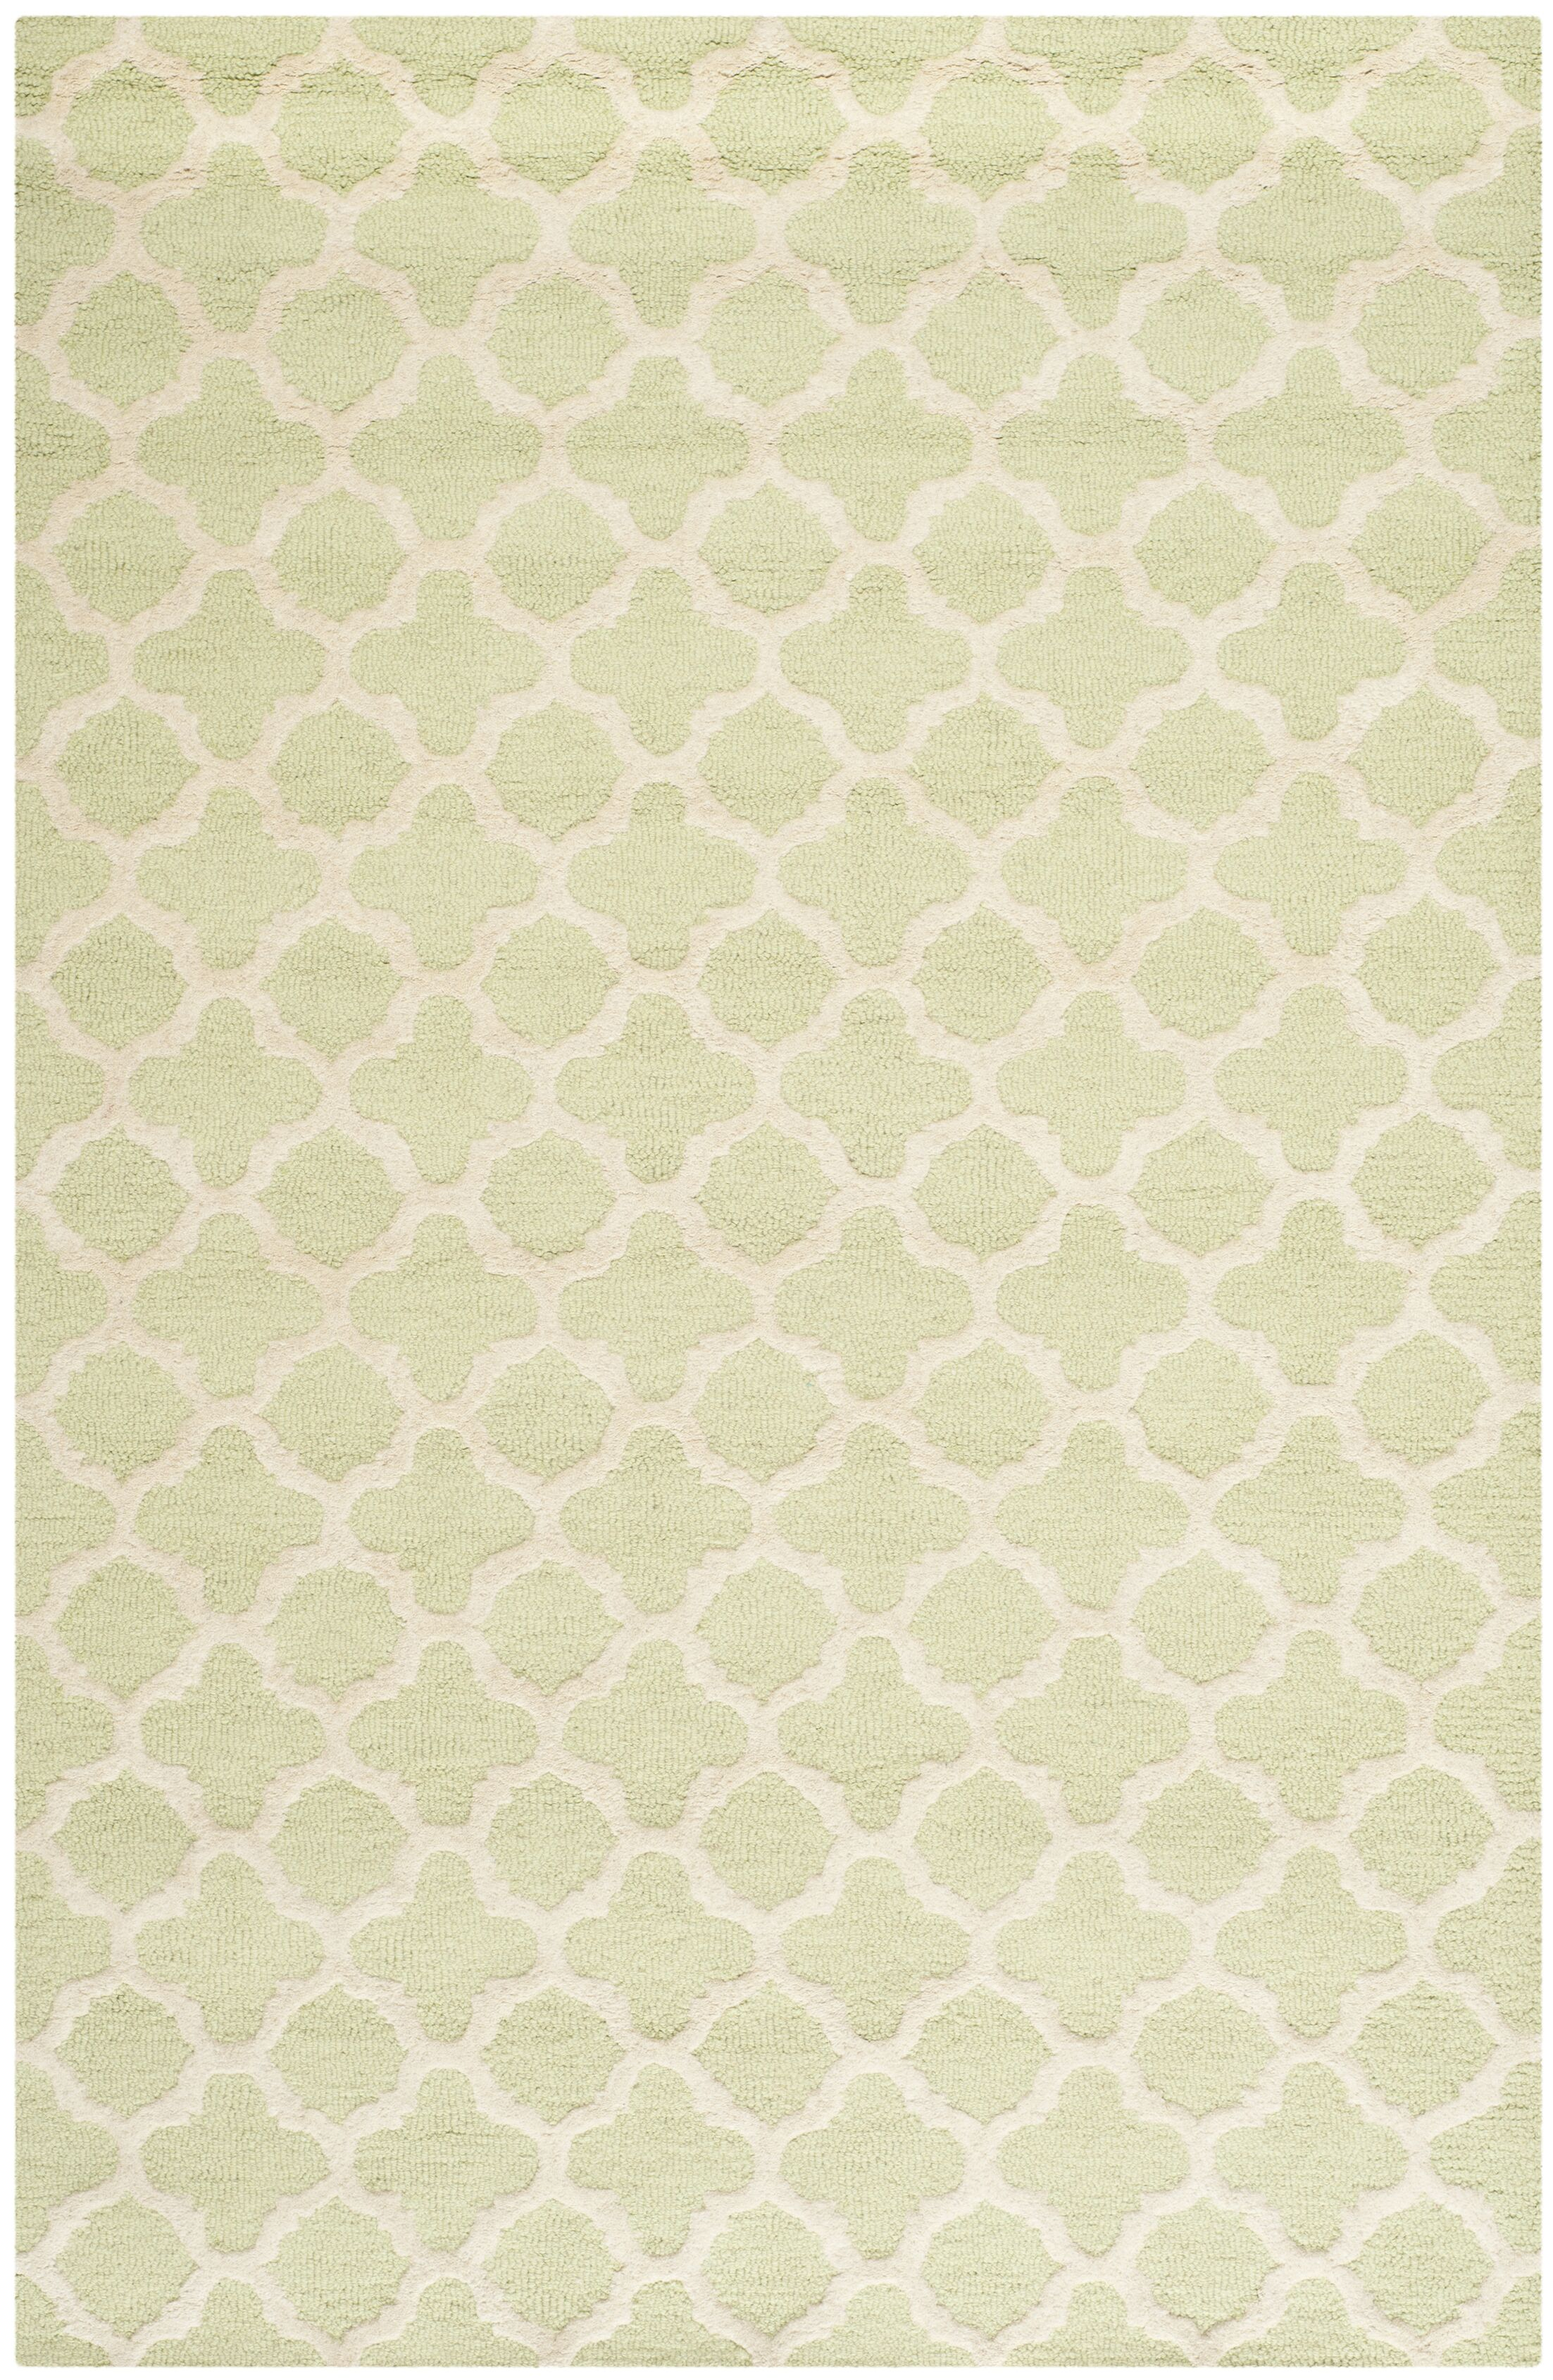 Martins Hand-Tufted Wool Light Green/Ivory Area Rug Rug Size: Rectangle 9' x 12'